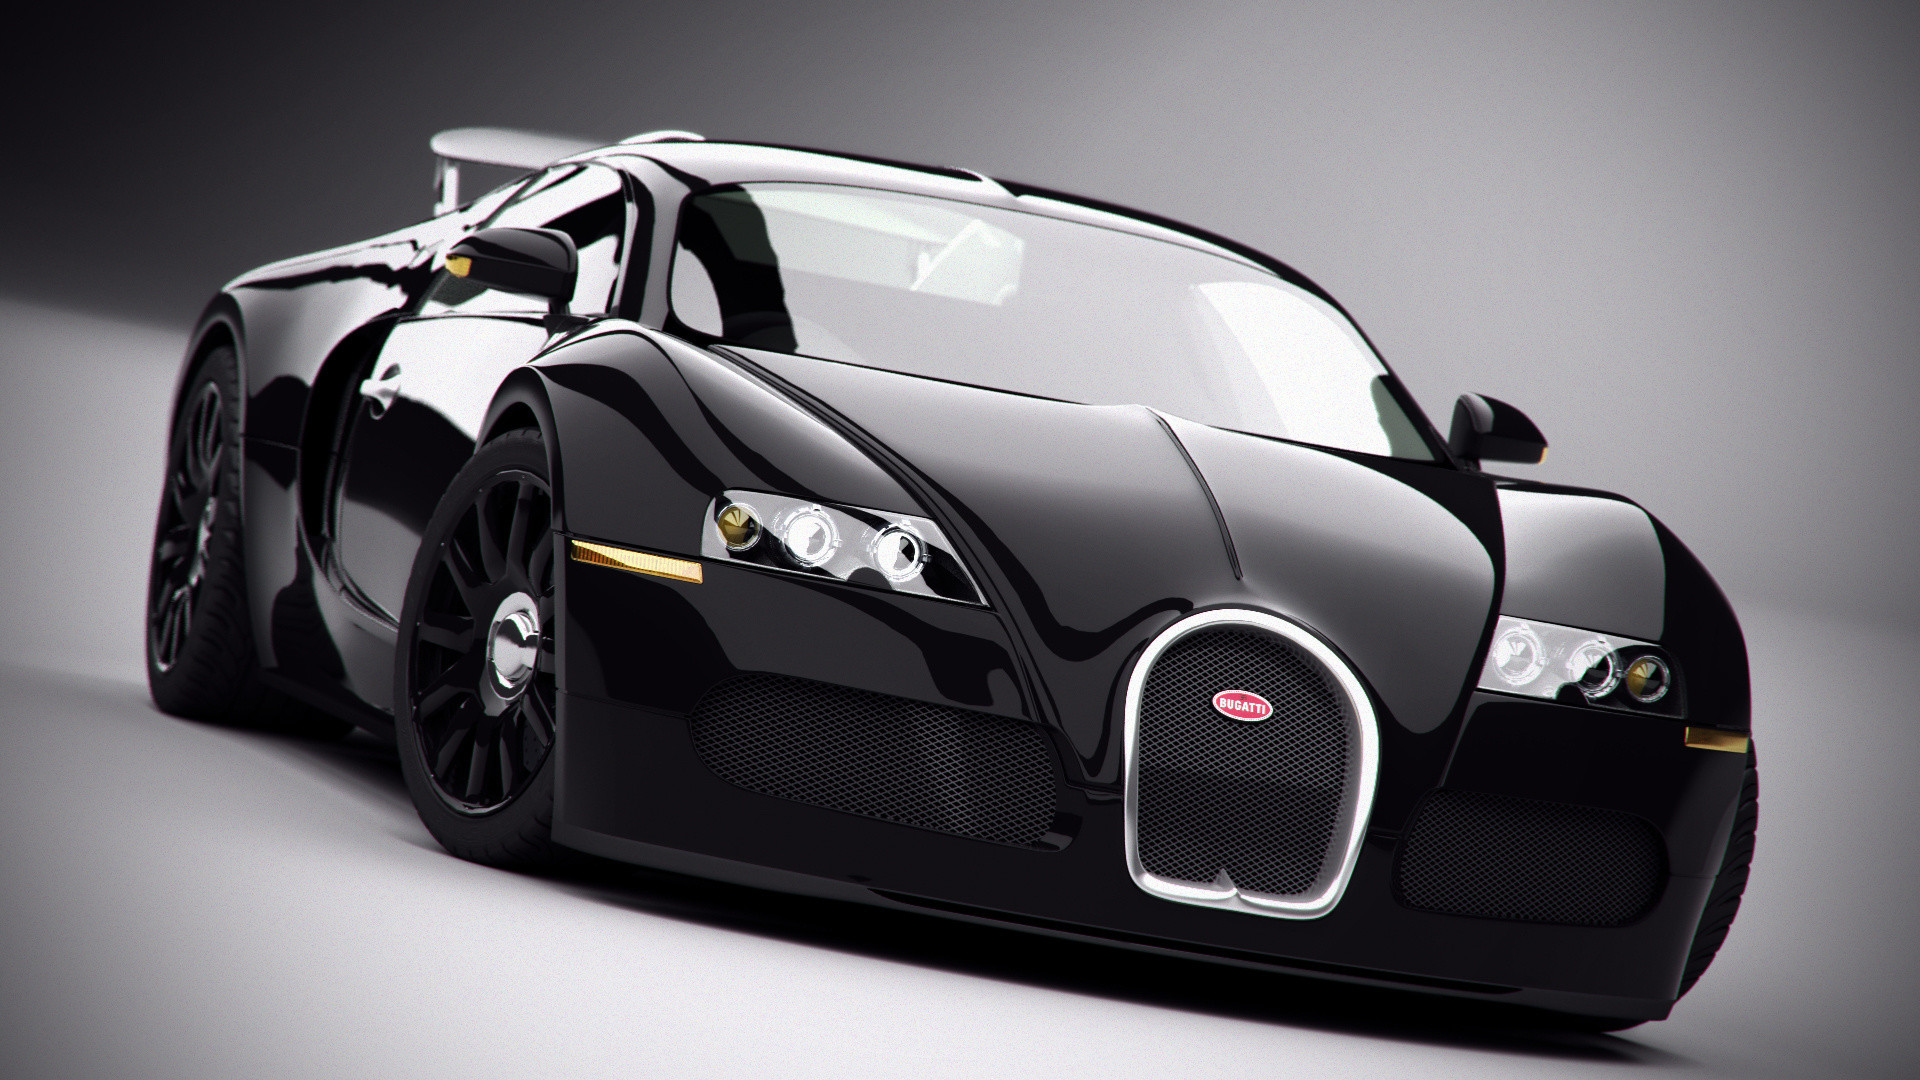 Bugatti Veyron Hd Wallpapers 73 Background Pictures